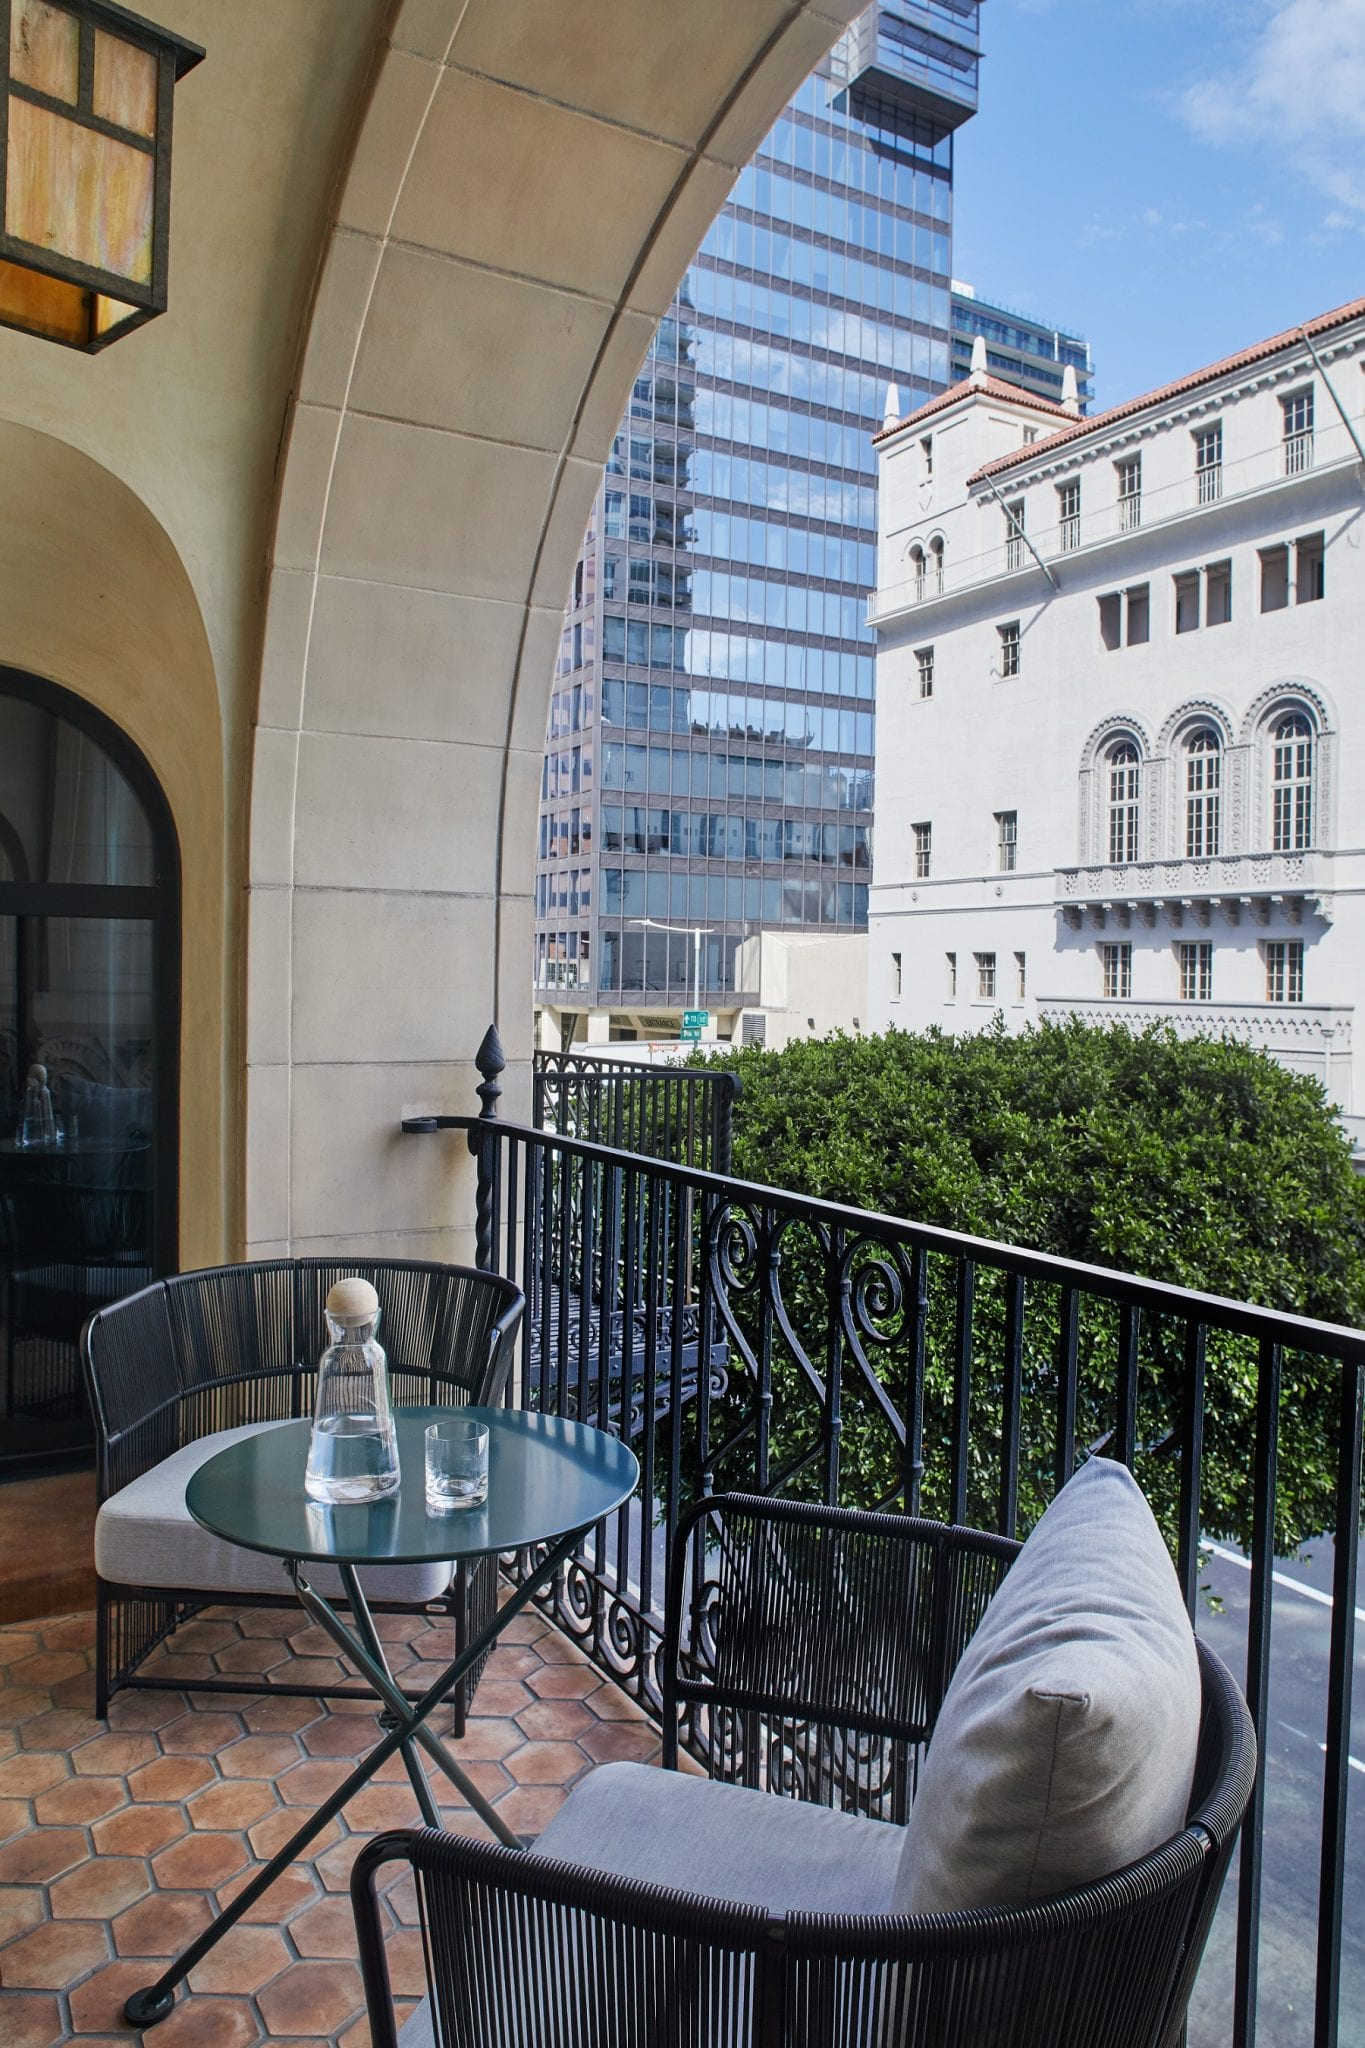 two chairs and a table on a balcony overlooking buildings